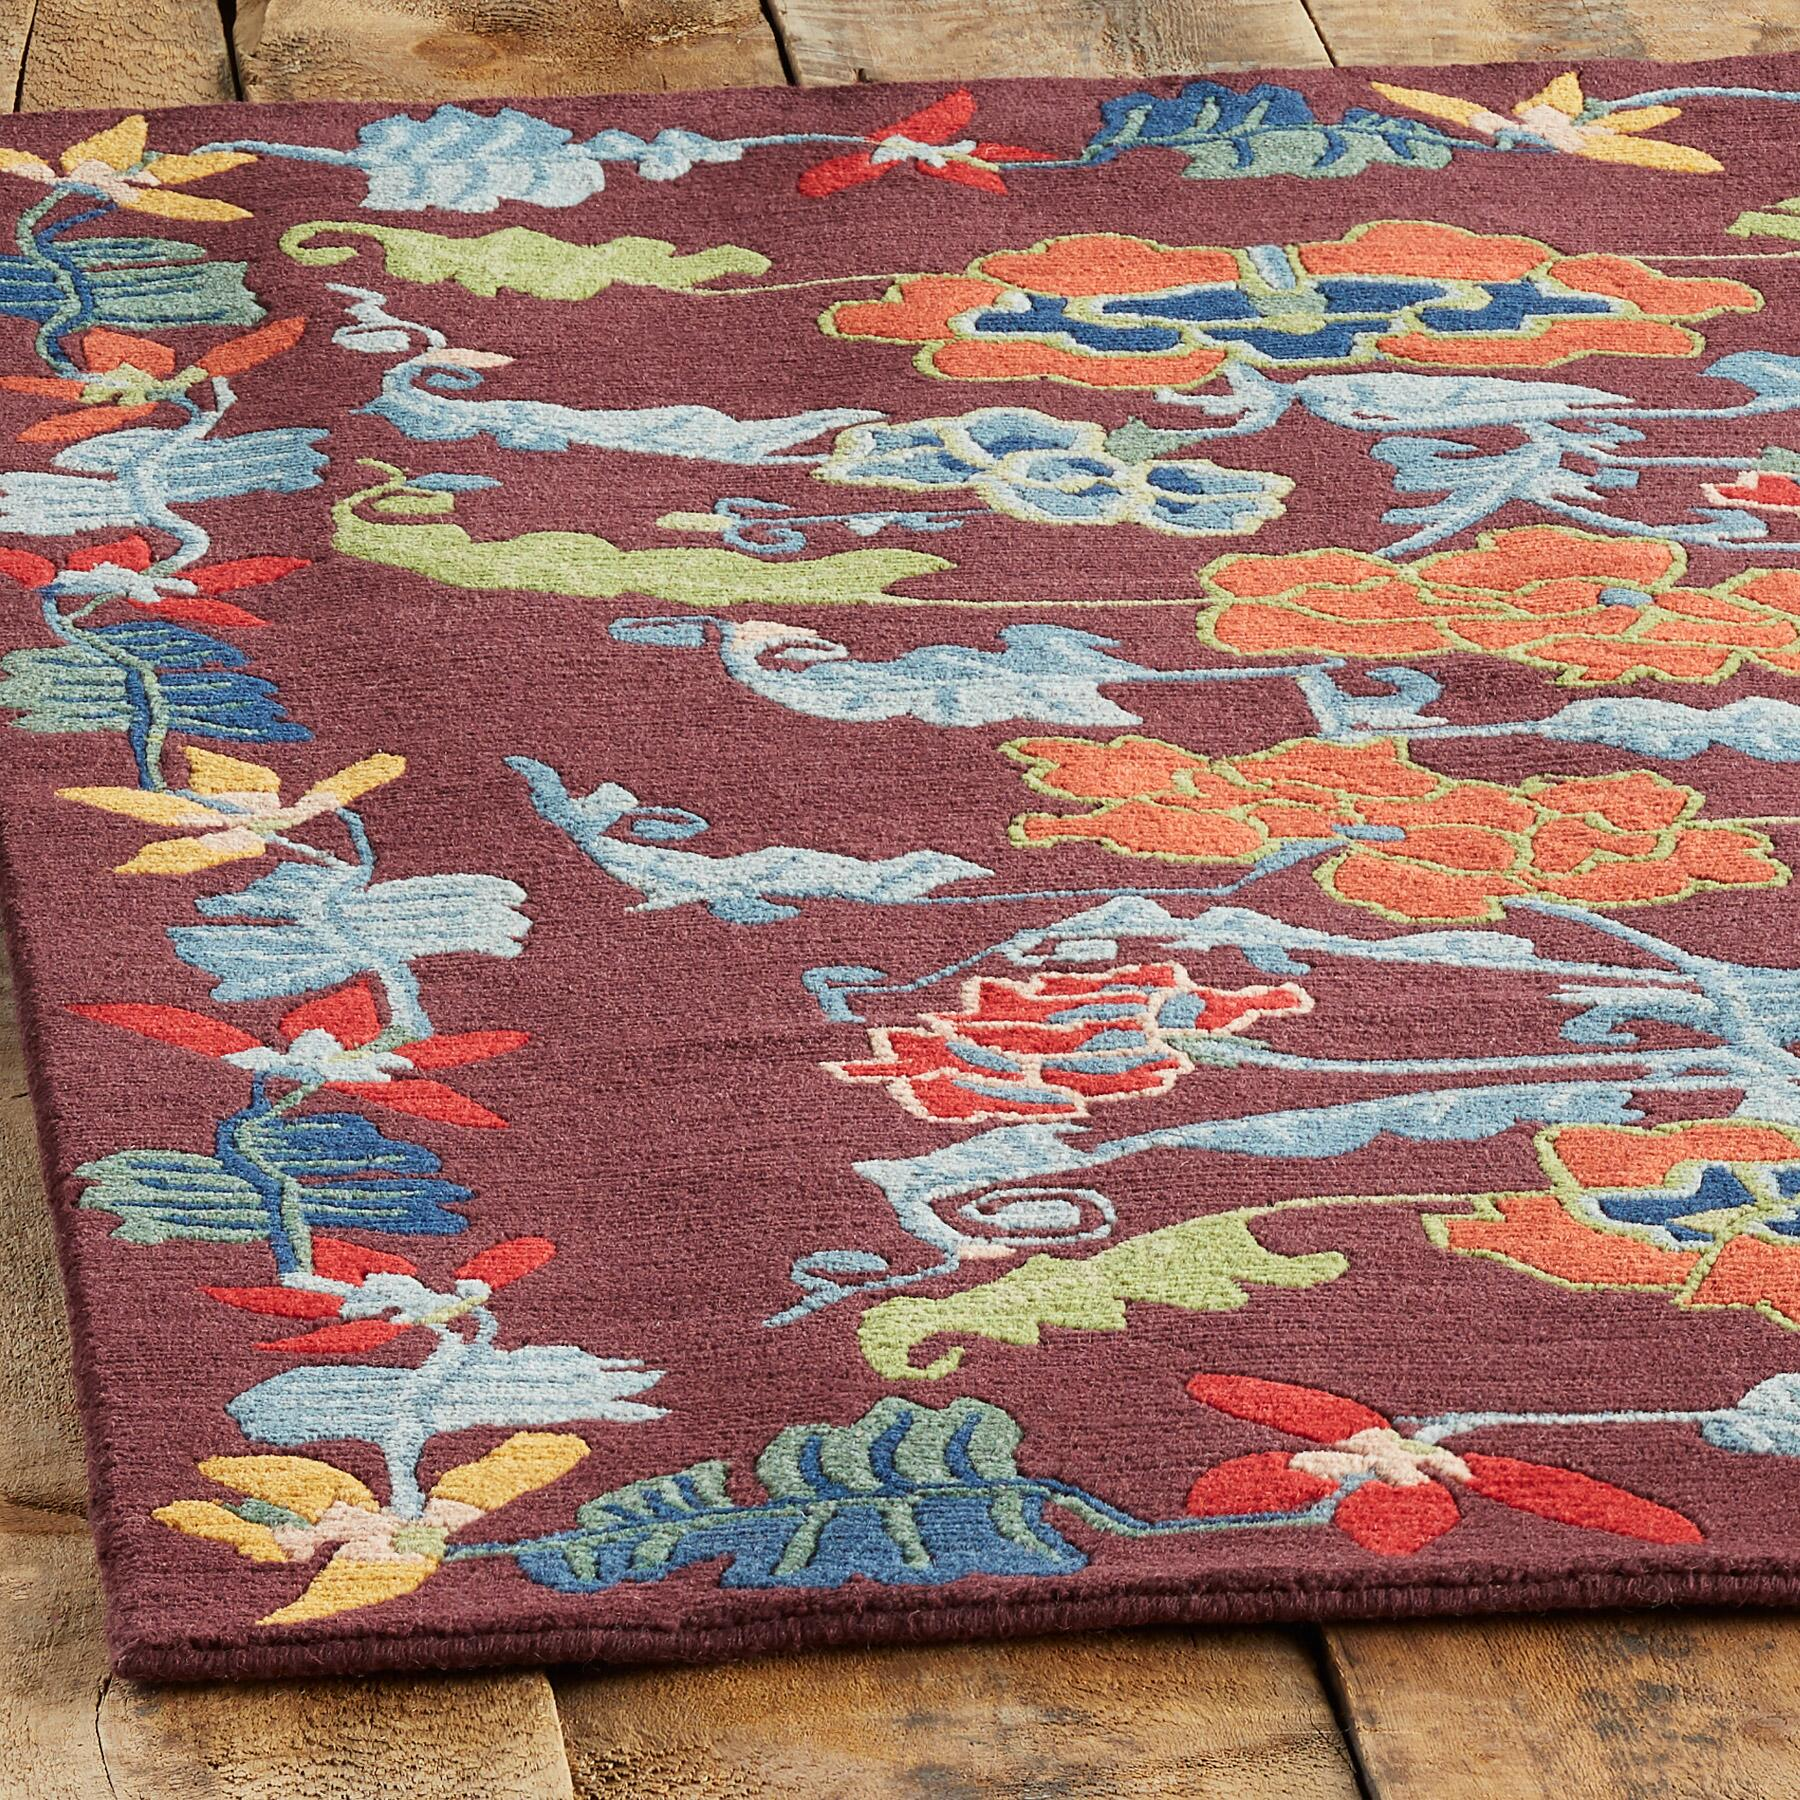 ANNAPURNA KNOTTED RUG - LG: View 2